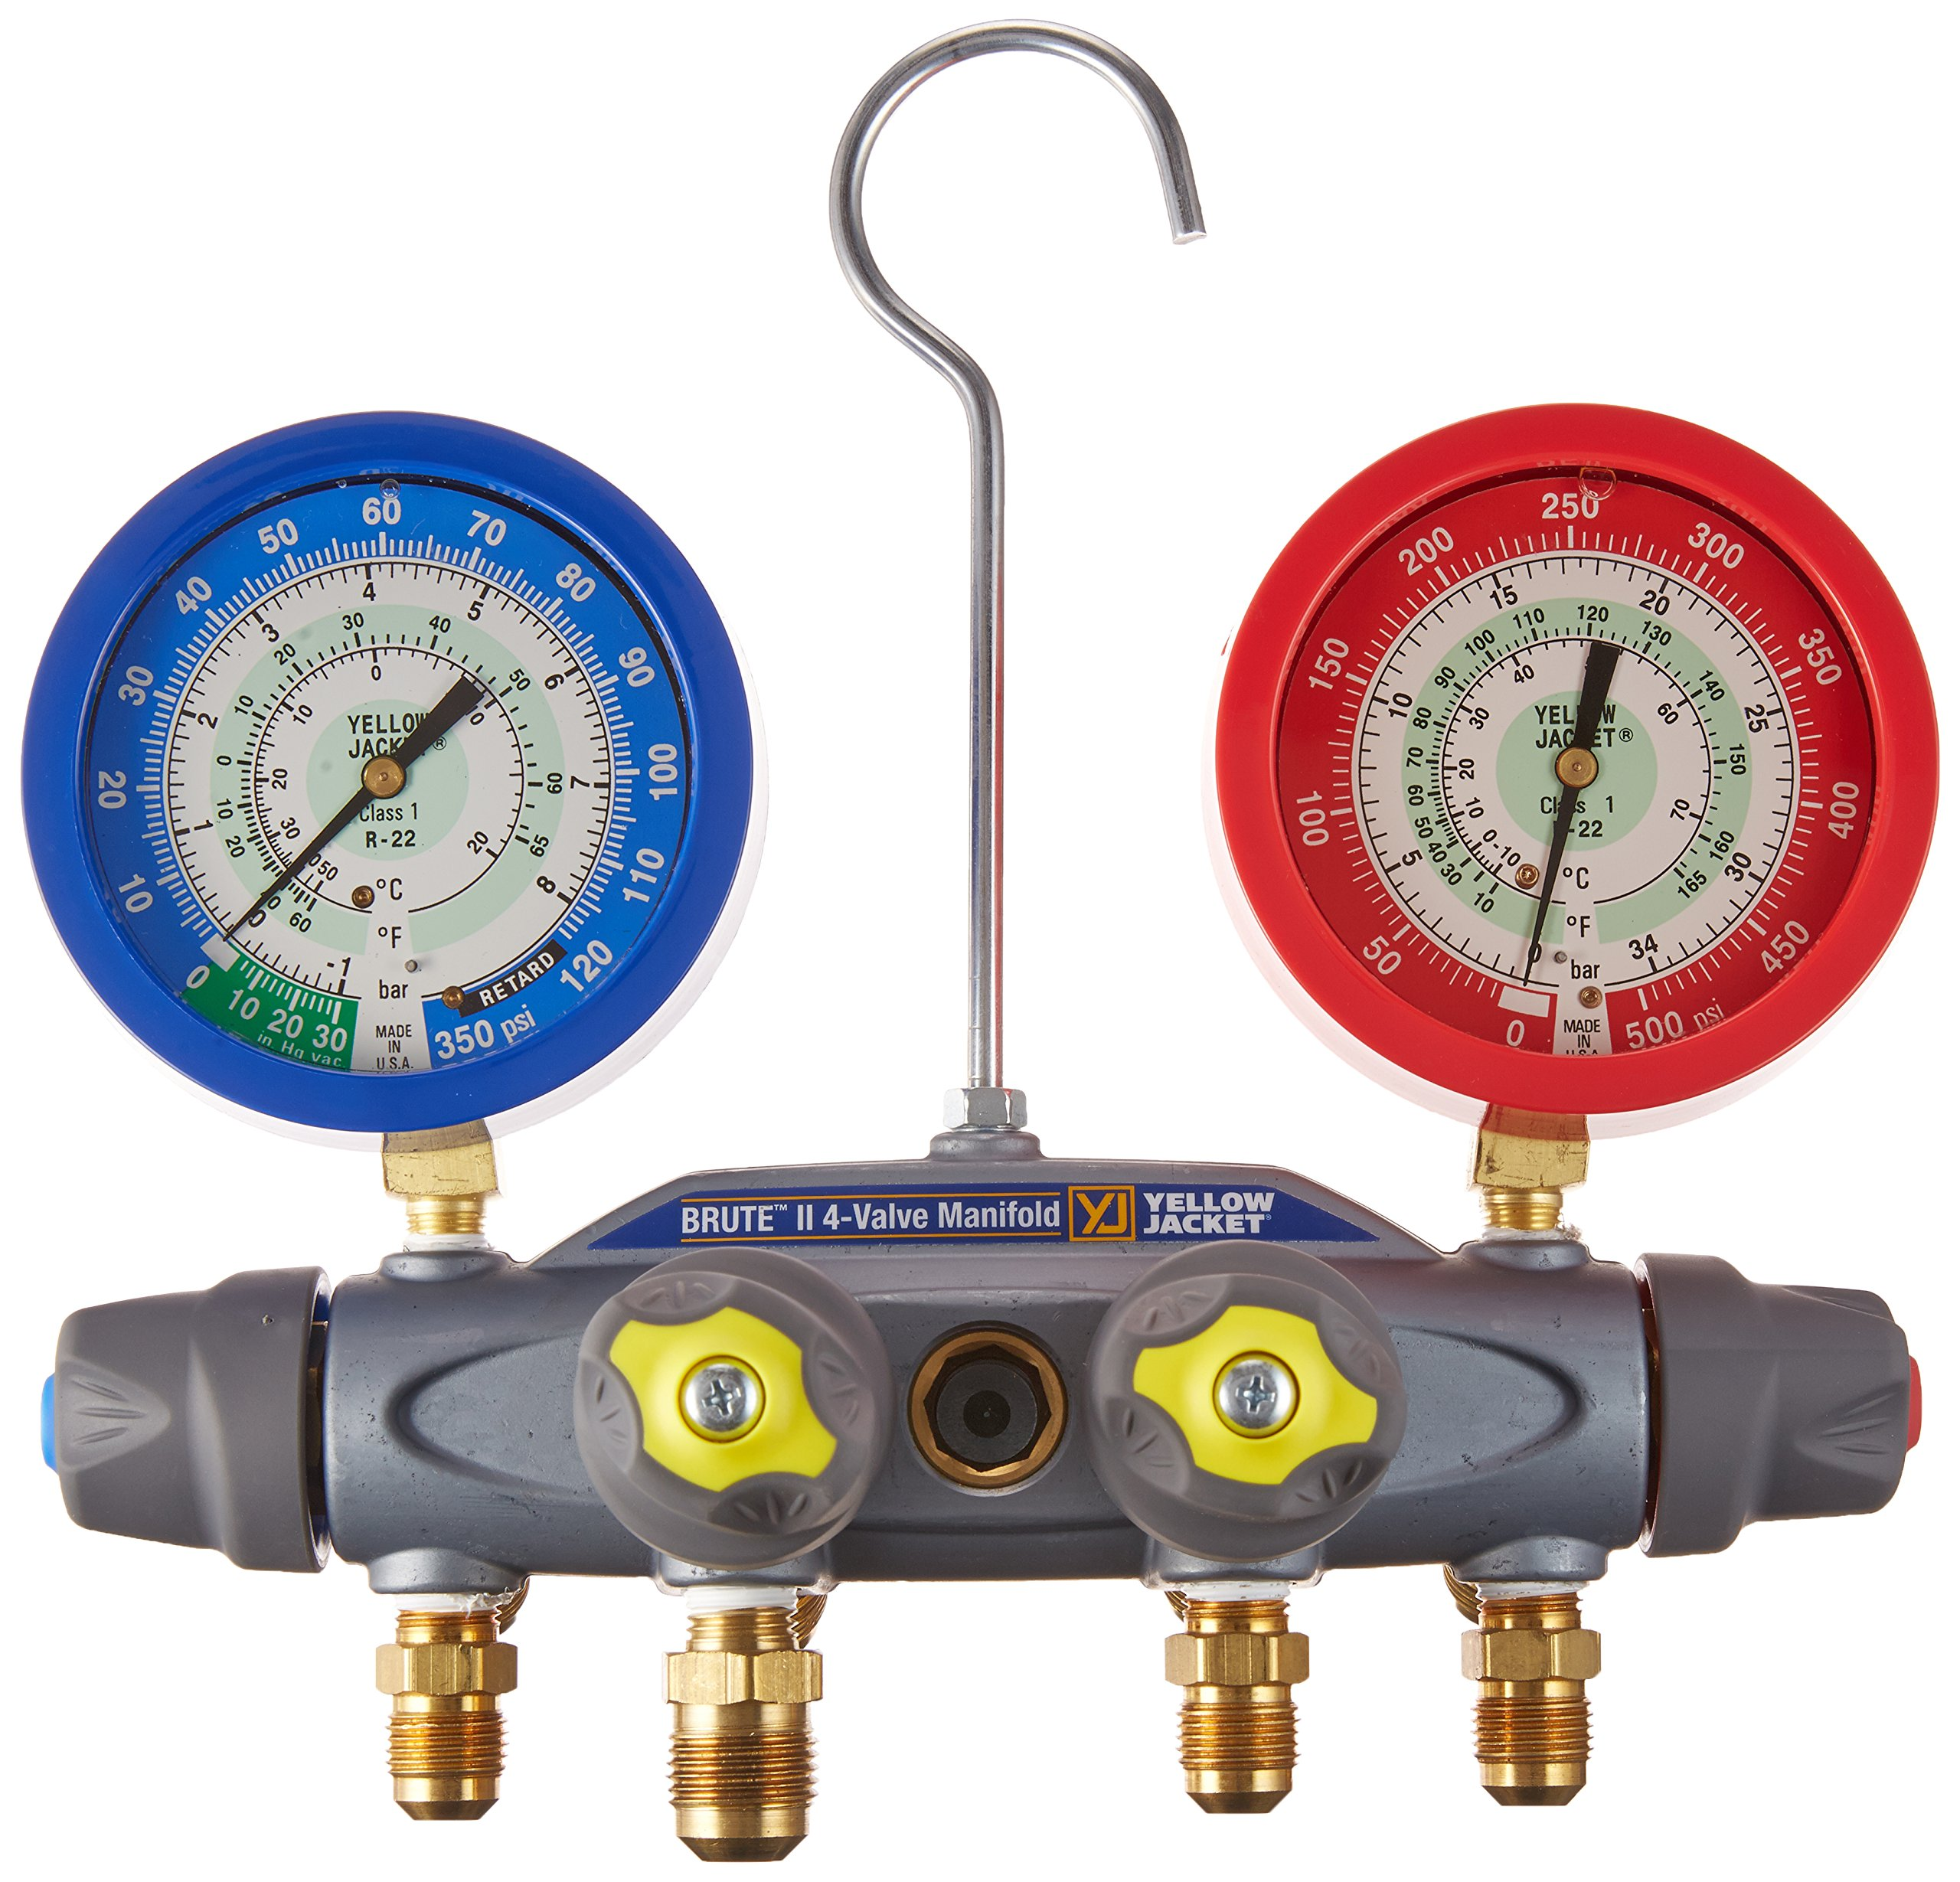 Yellow Jacket 46081 Brute II 4-Valve Manifold with Liquid Gauges, 1/2'' Vacuum Port, 3/8'' Charge, bar/psi, R-22